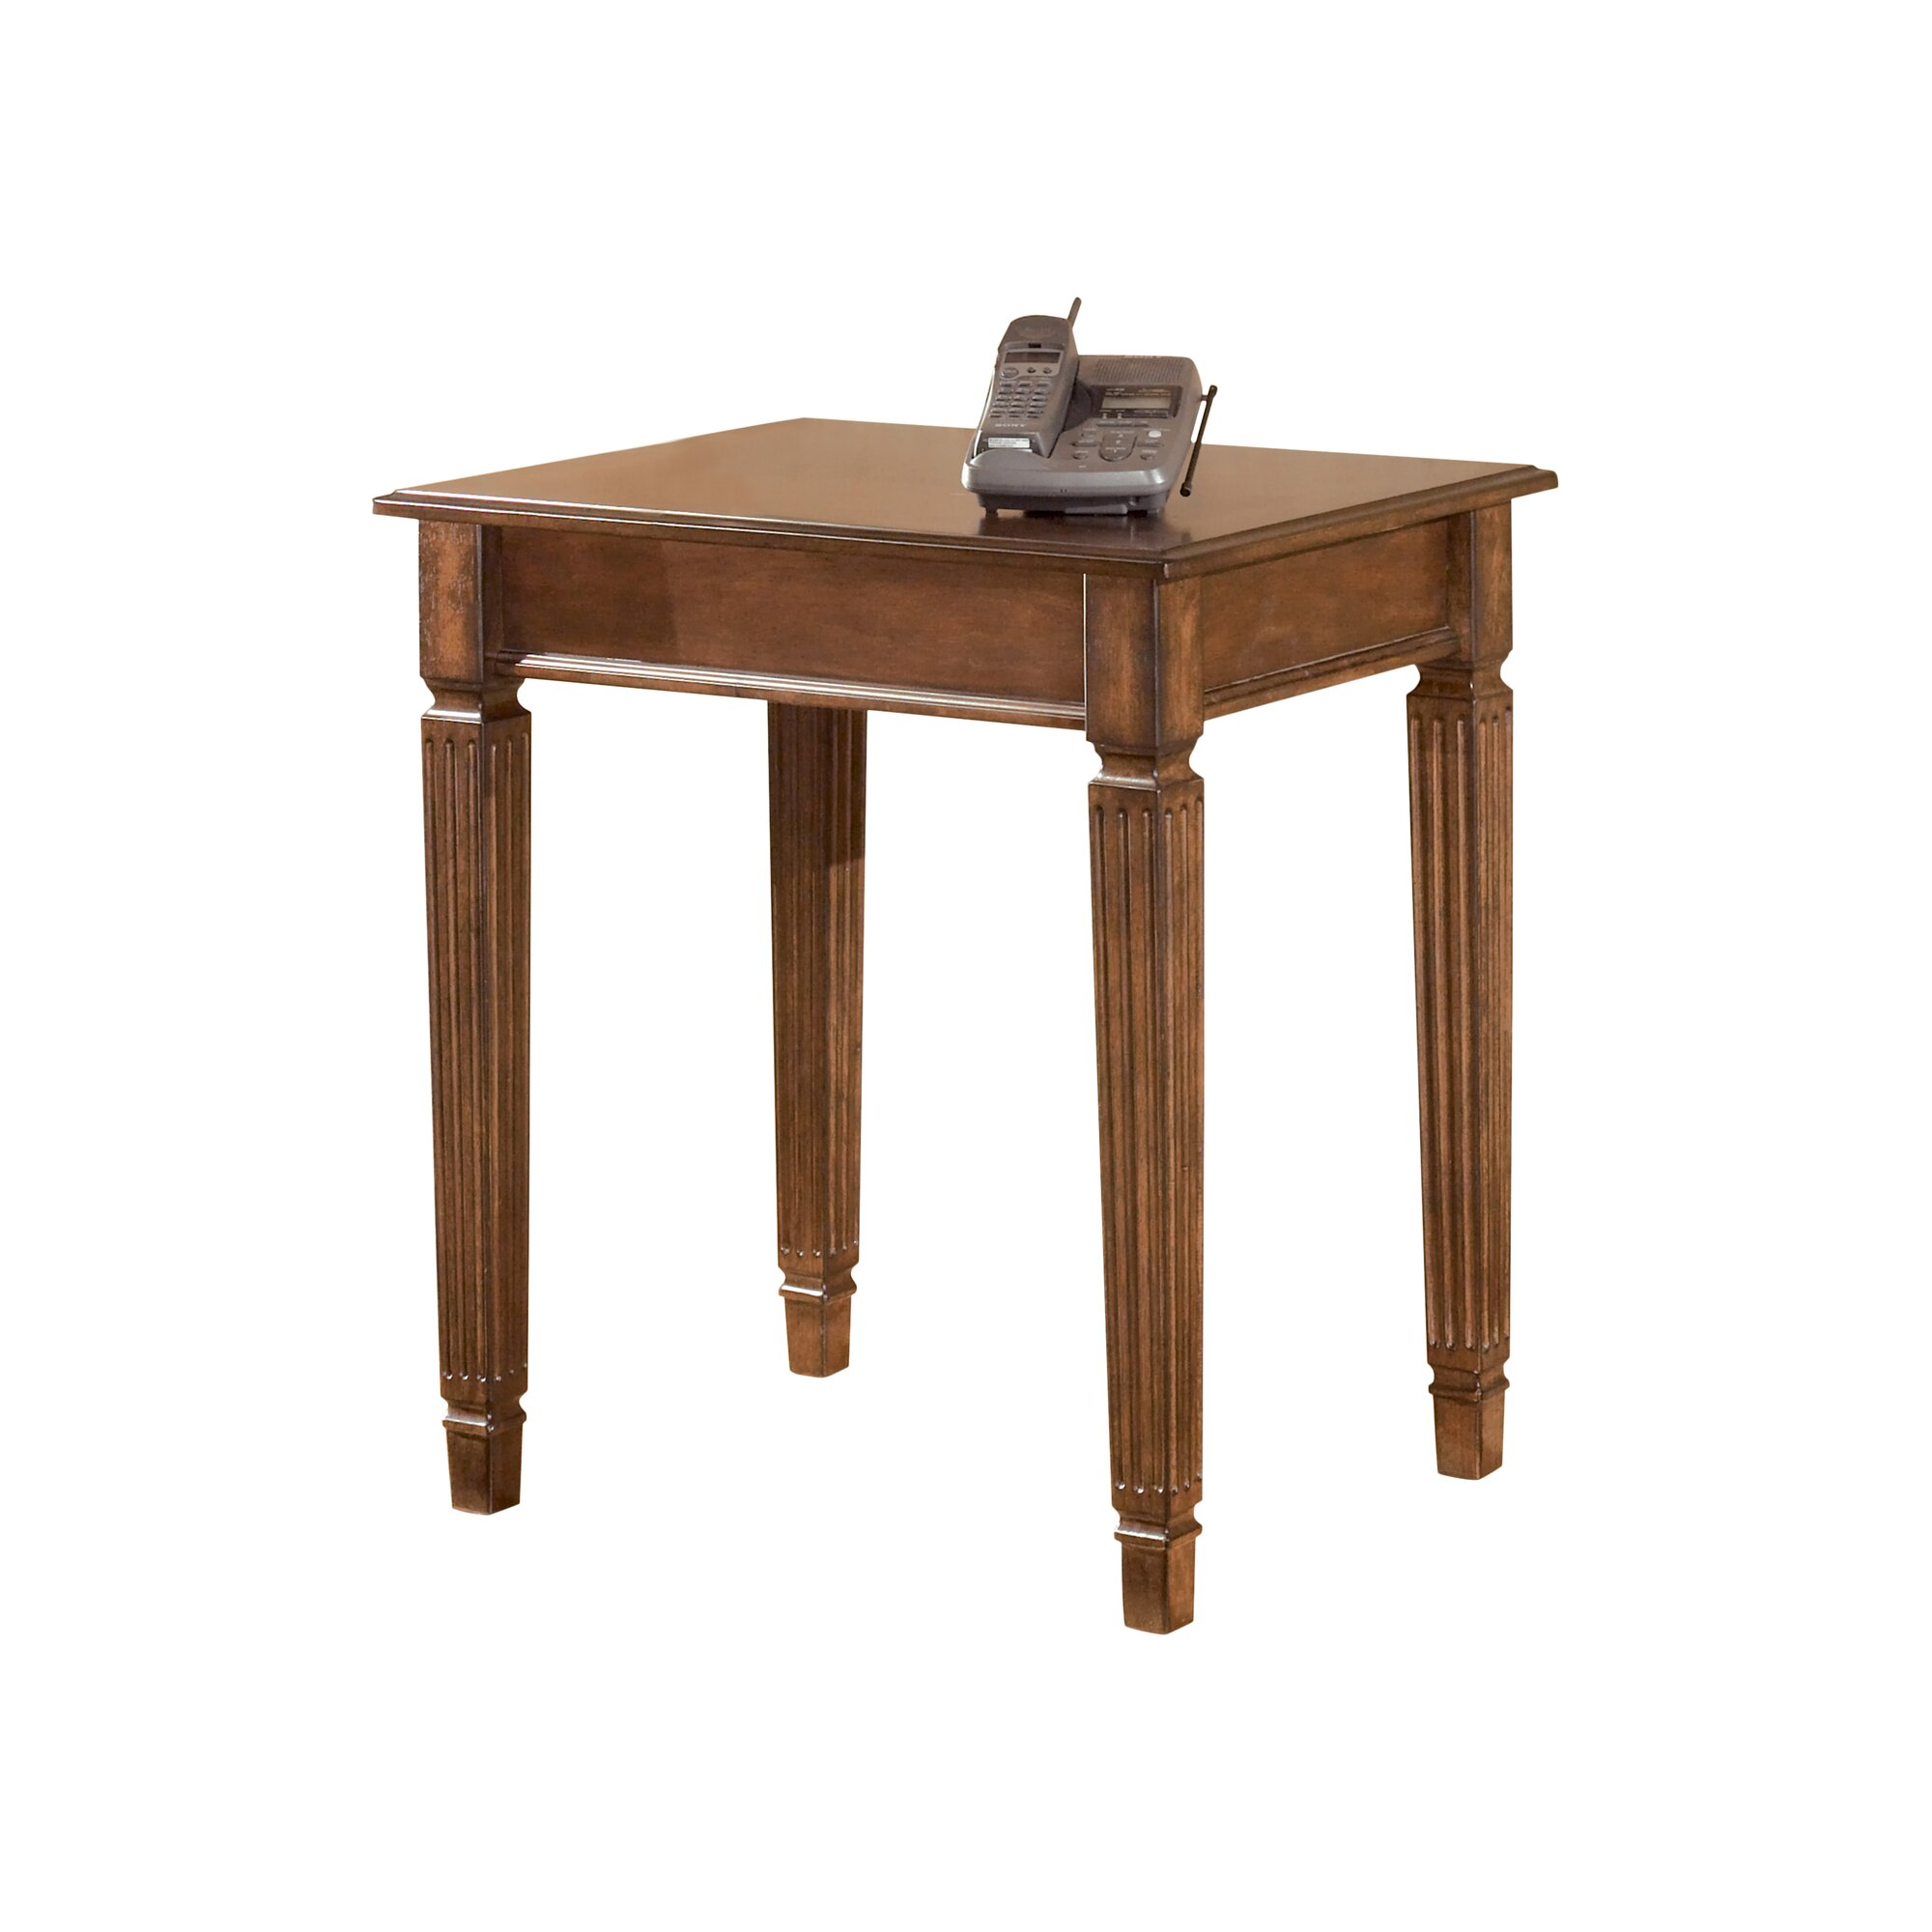 Signature Design by Ashley Hamlyn Corner Table & Reviews | Wayfair